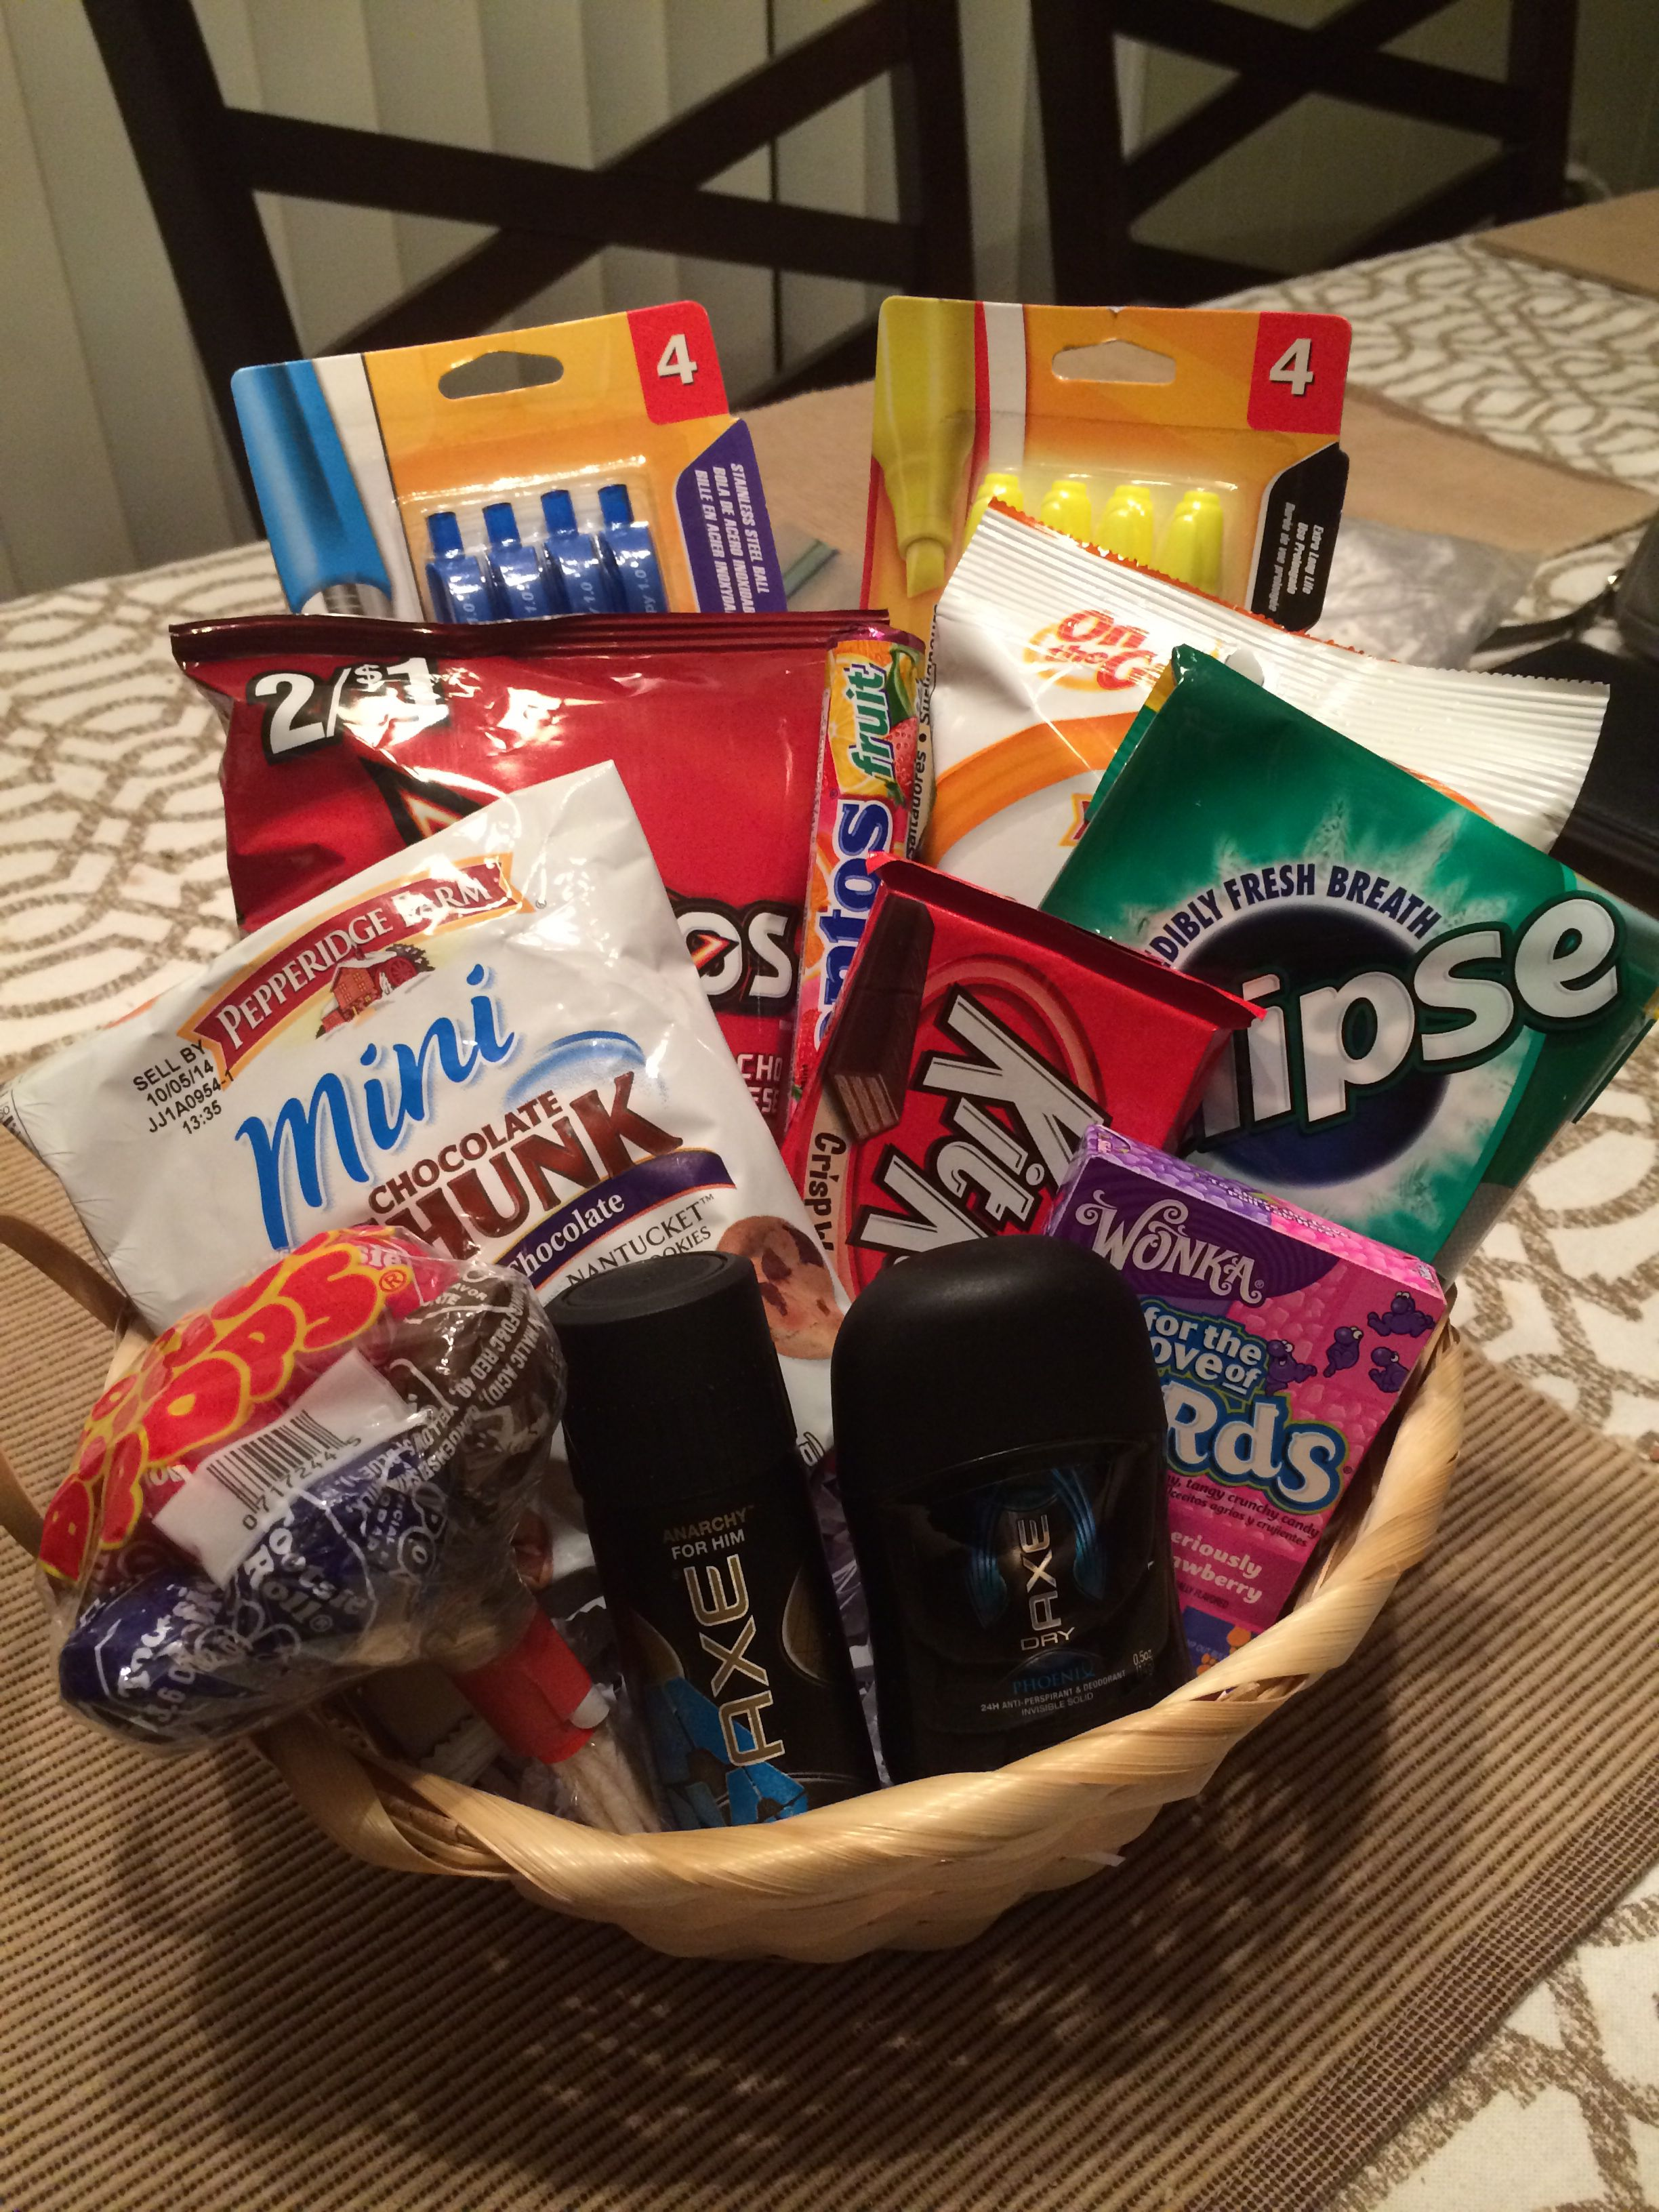 8th grade graduation gift for a boy  Gift Basket Ideas